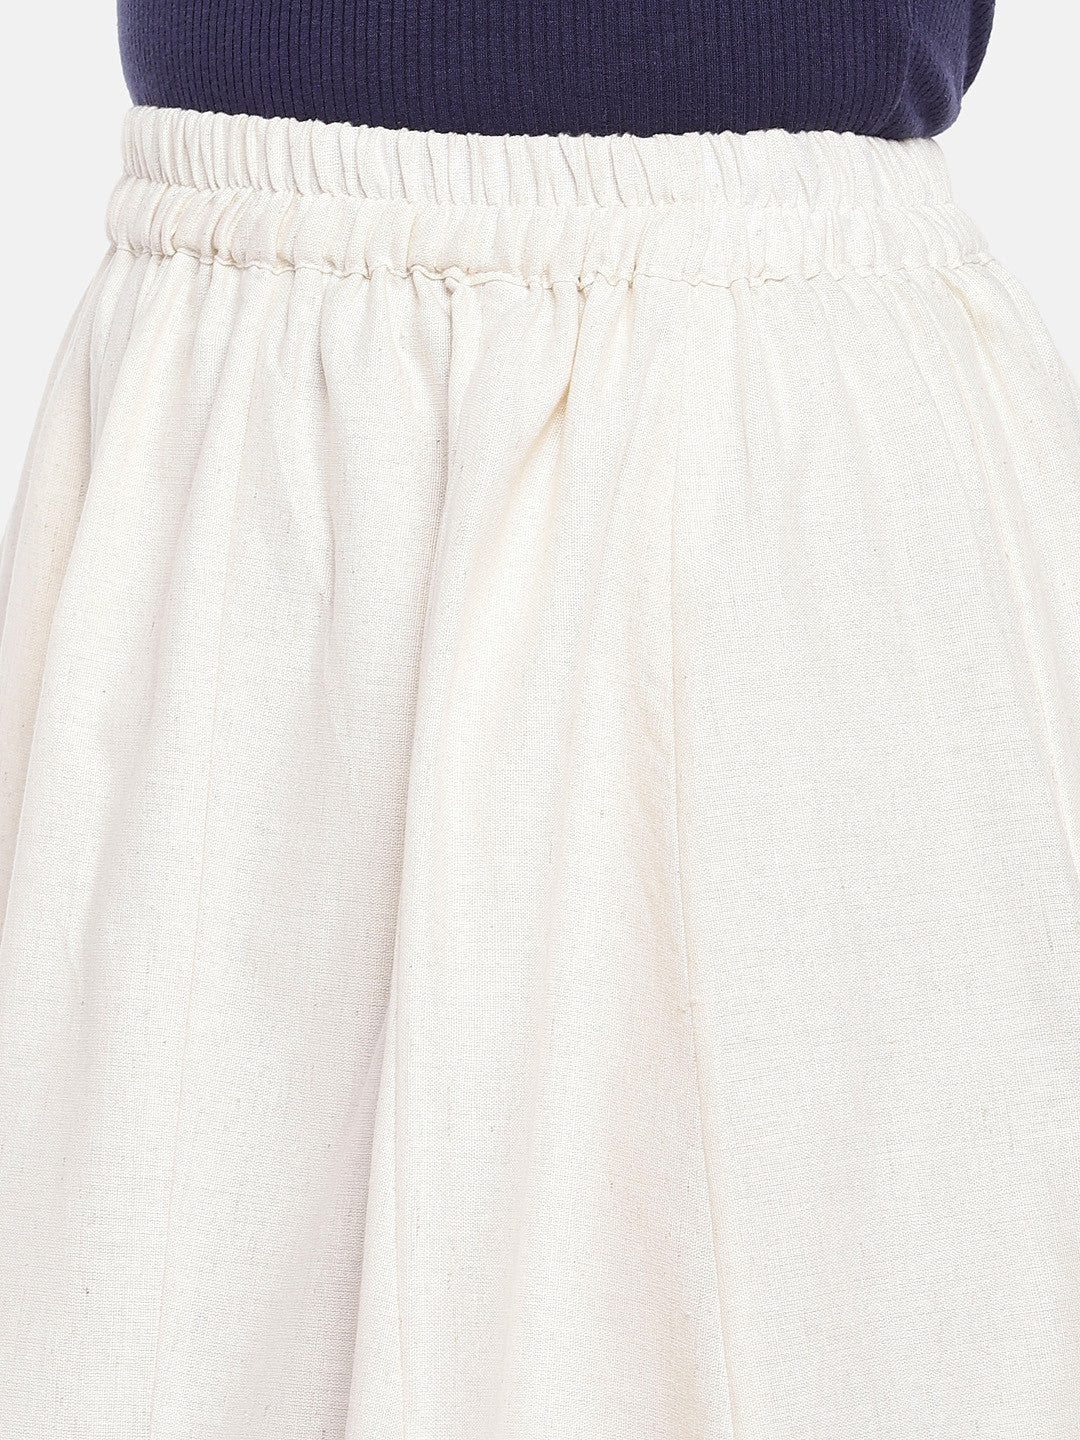 White Solid Flared Skirt-5